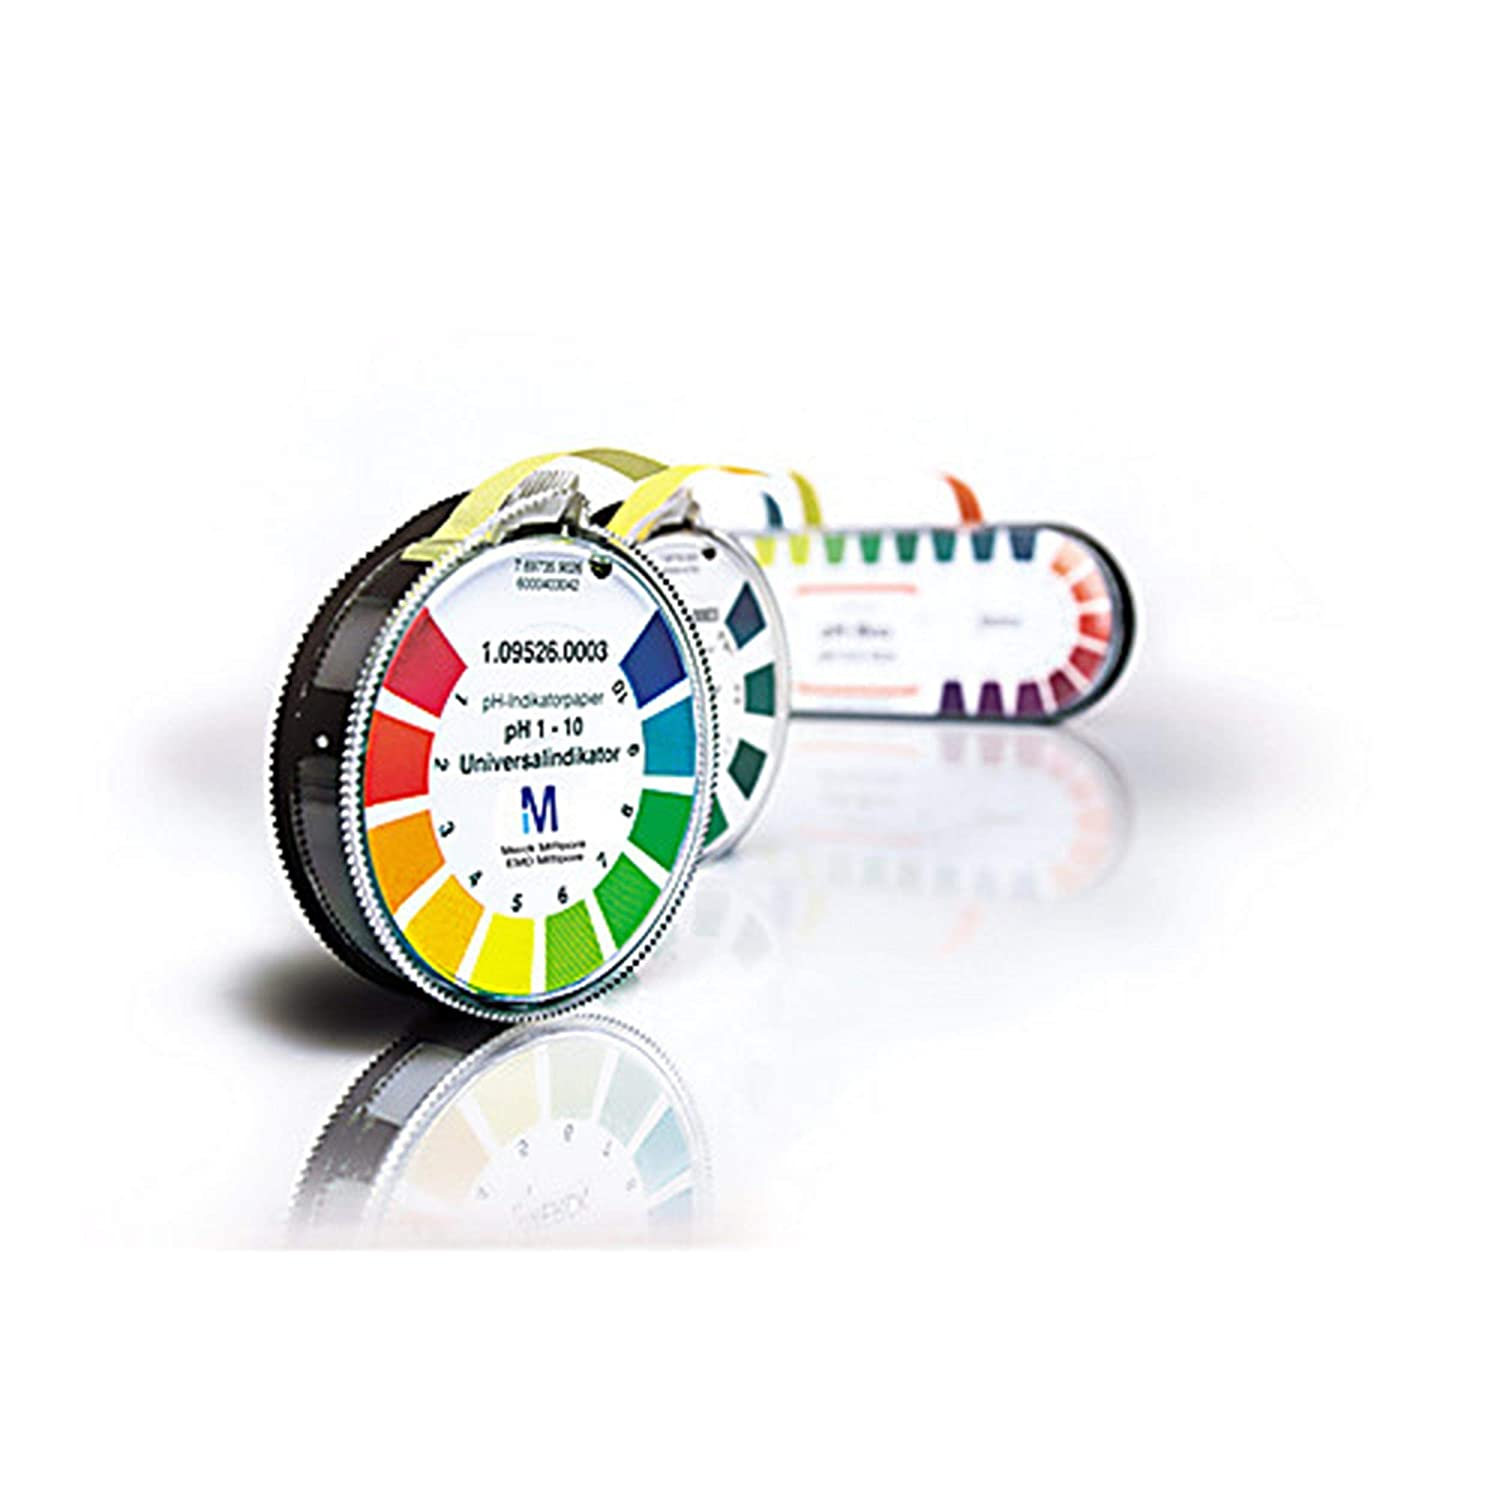 Millipore Sigma 1.09555.0003 pH-Indicator Paper with Color Scale, pH 3.8-5.4, Special Indicator, 4.8m Roll (Pack of 3)